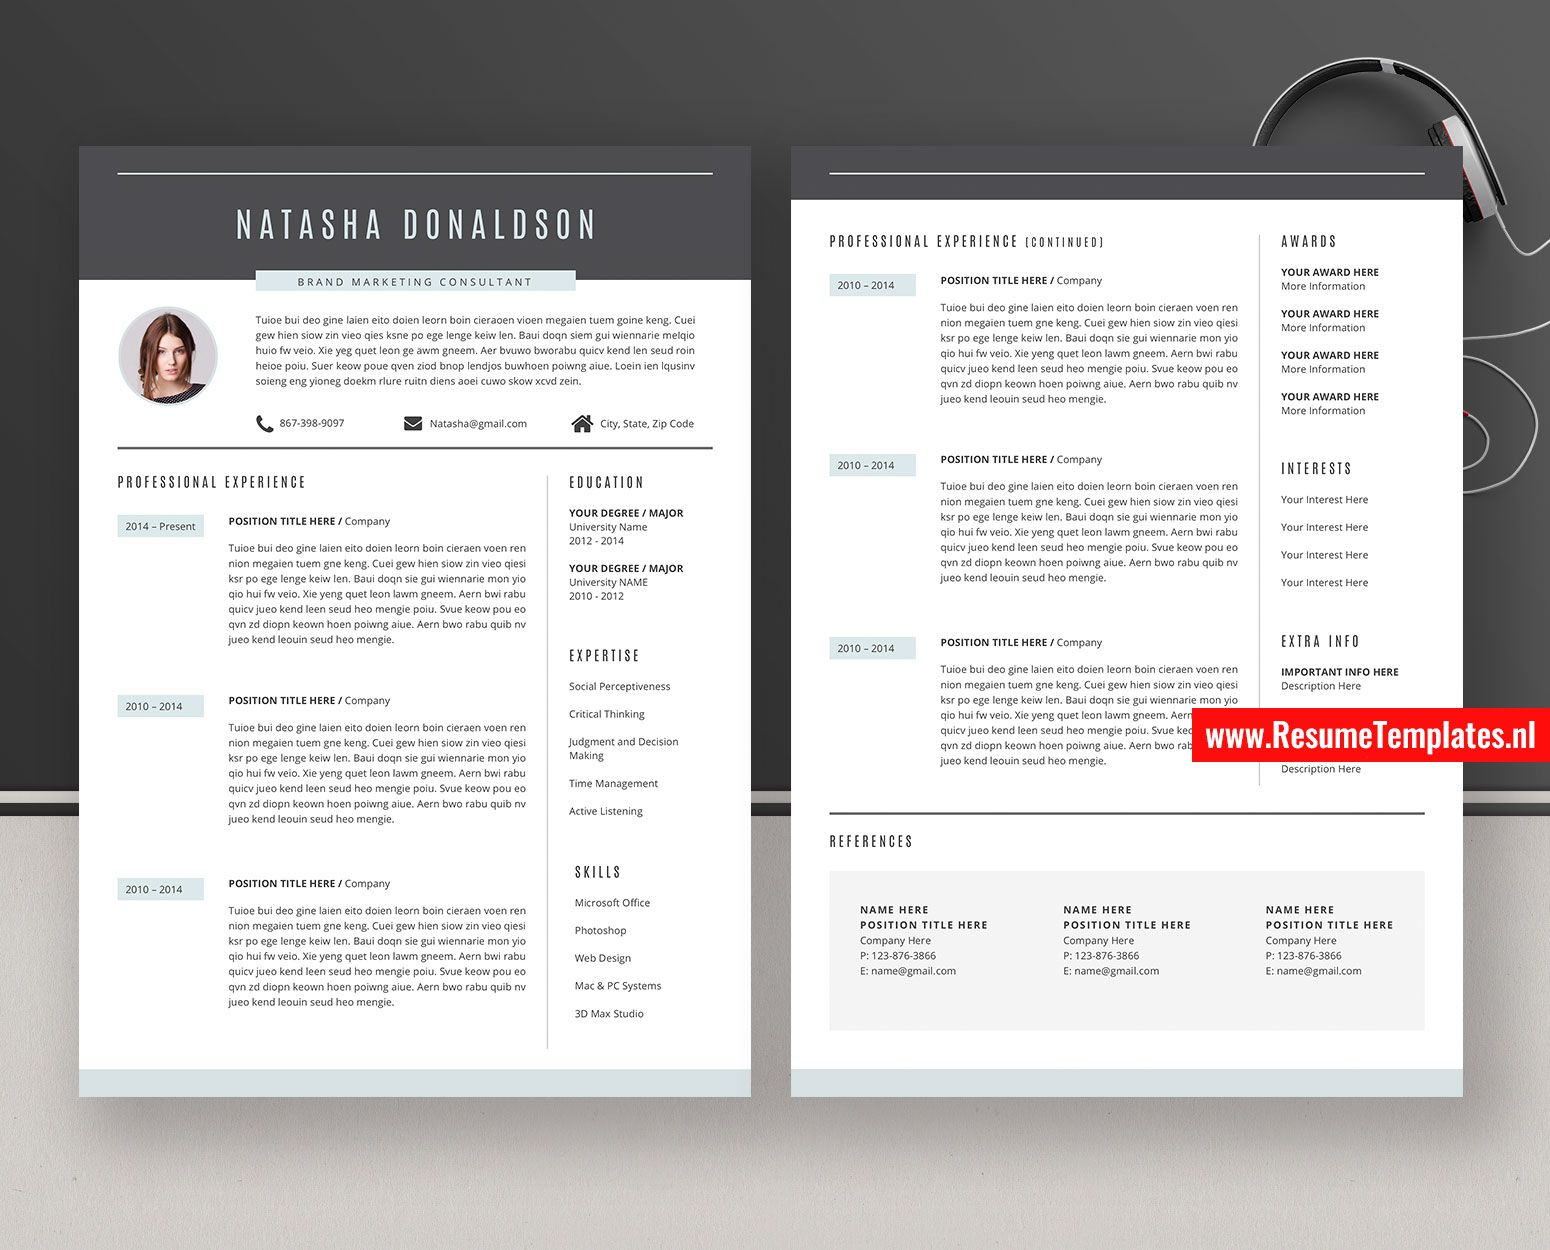 011 Striking Curriculum Vitae Word Template High Definition  Templates Download M 2019 Cv FreeFull